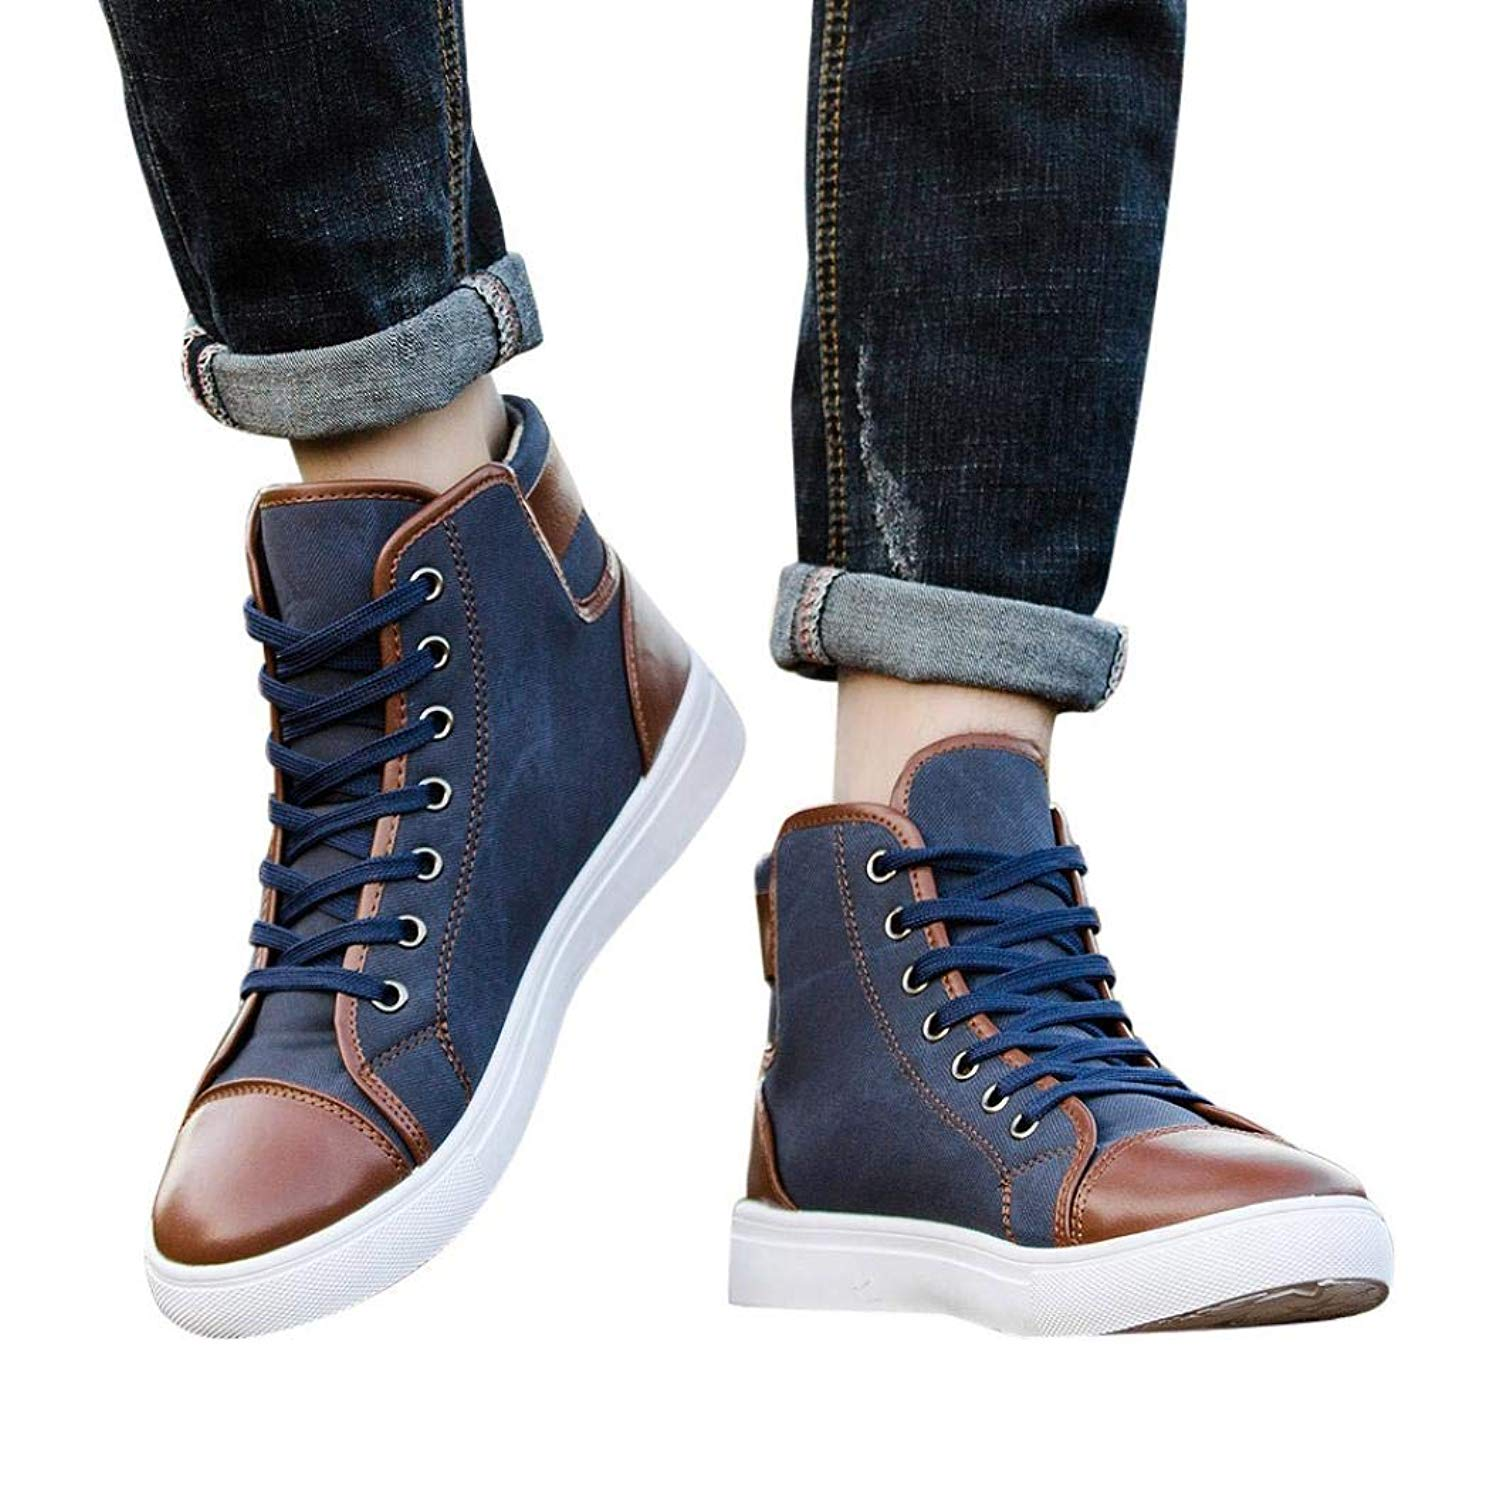 HTHJSCO Women Men's High Top Vintage Sneaker, Lace-up Ankle Boots Shoes Casual High Top Canvas Shoes